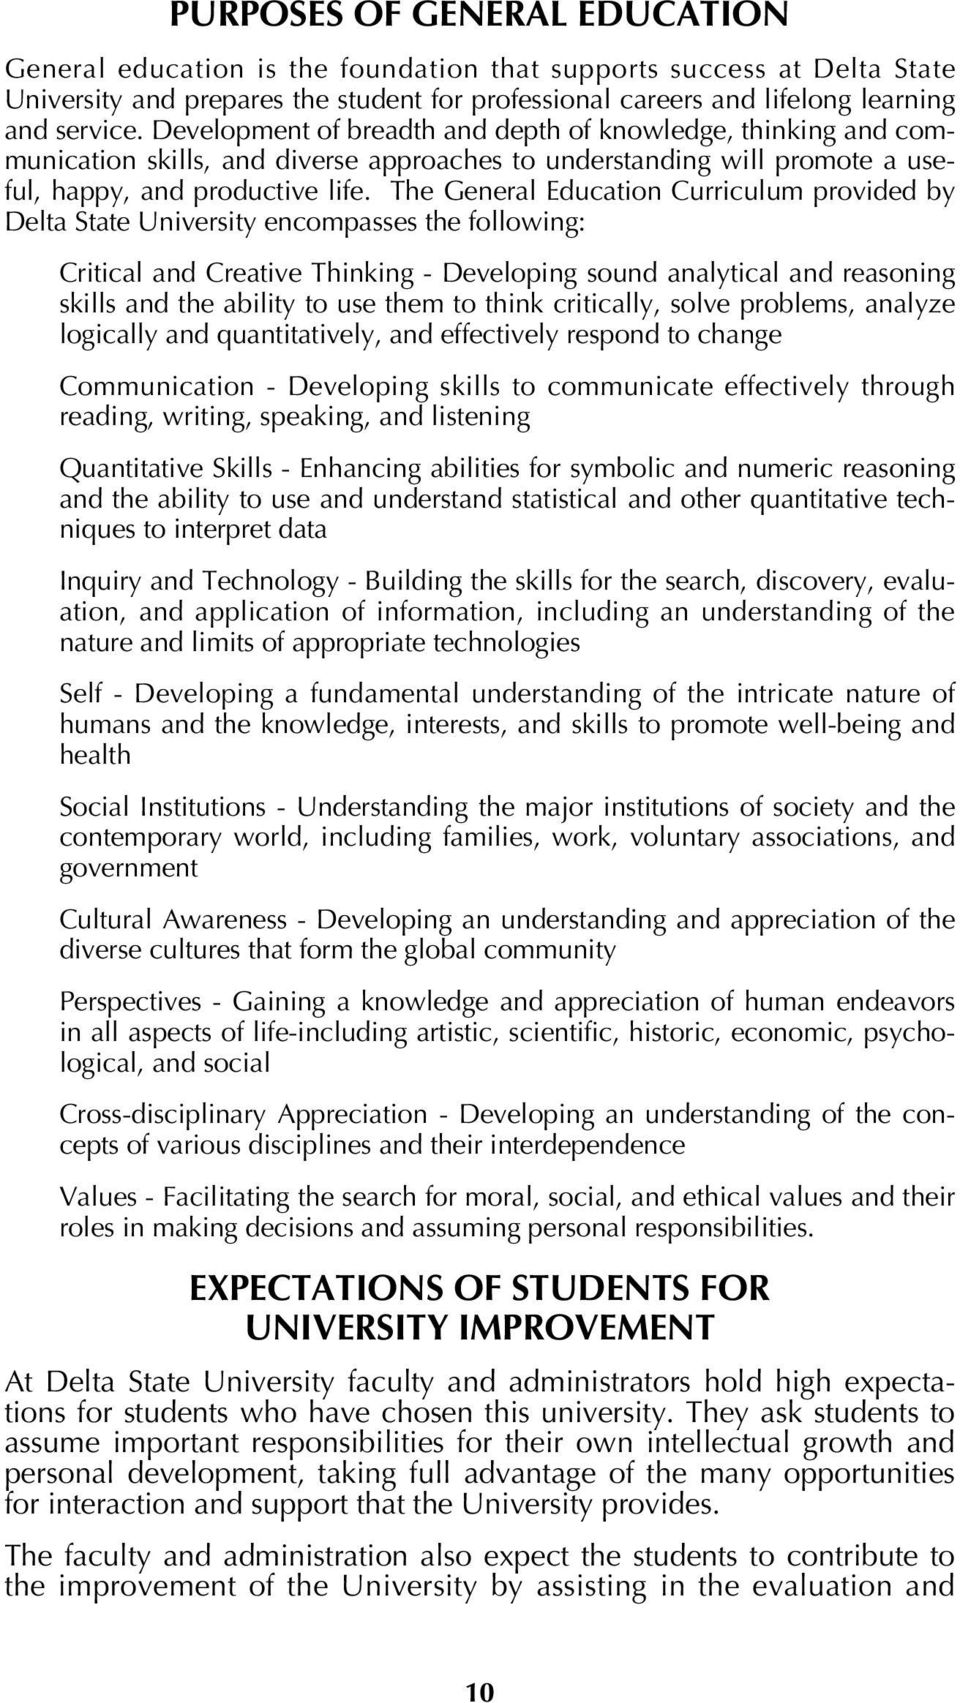 The General Education Curriculum provided by Delta State University encompasses the following: Critical and Creative Thinking - Developing sound analytical and reasoning skills and the ability to use